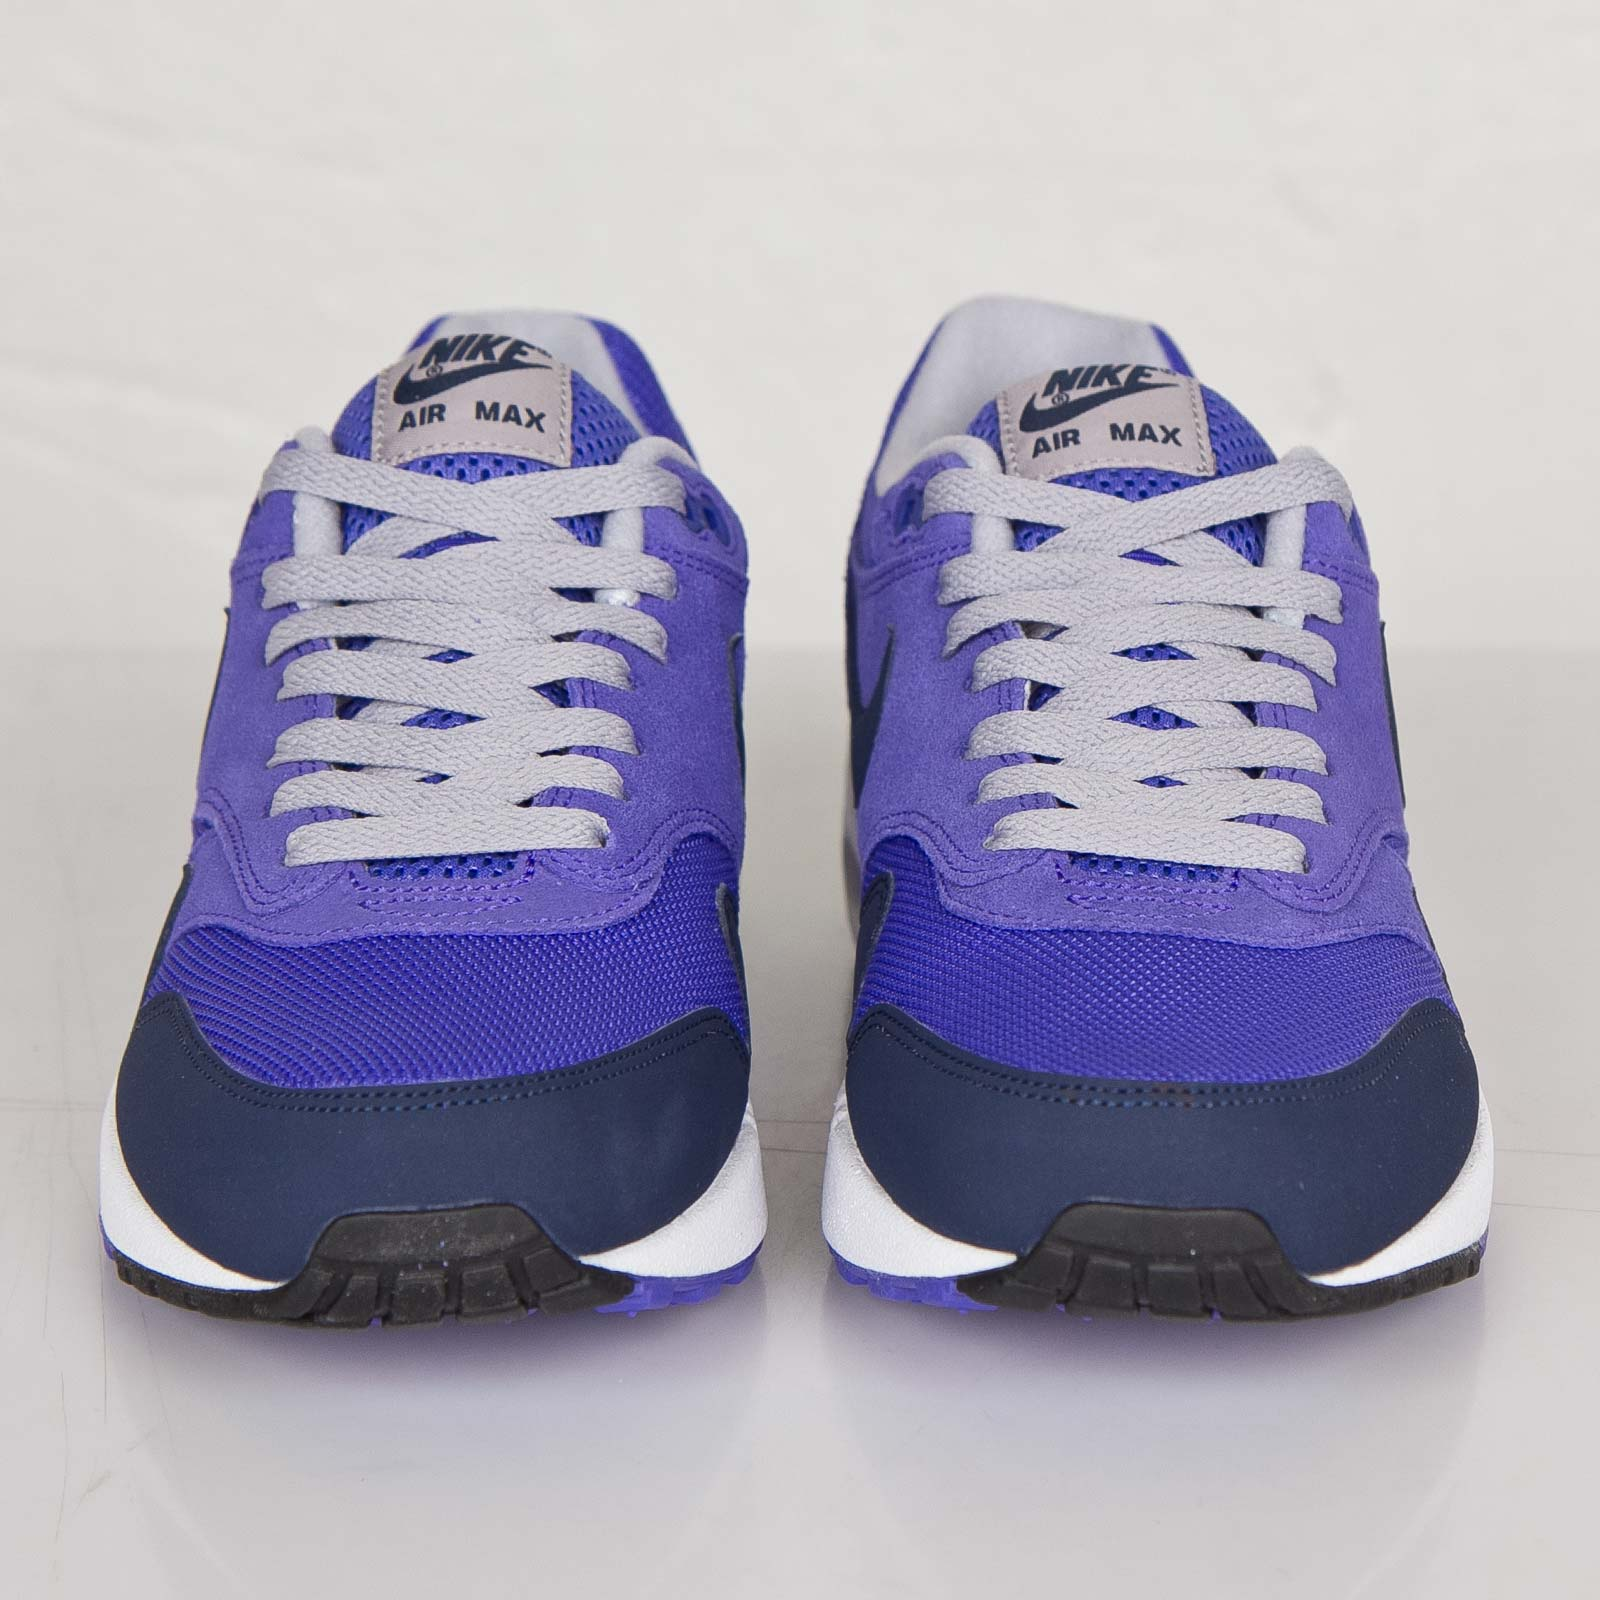 c721f7f20aee Nike Air Max 1 Essential Color  Persian Violet Midnight Navy-Black Style   537383-501. Price   129.00